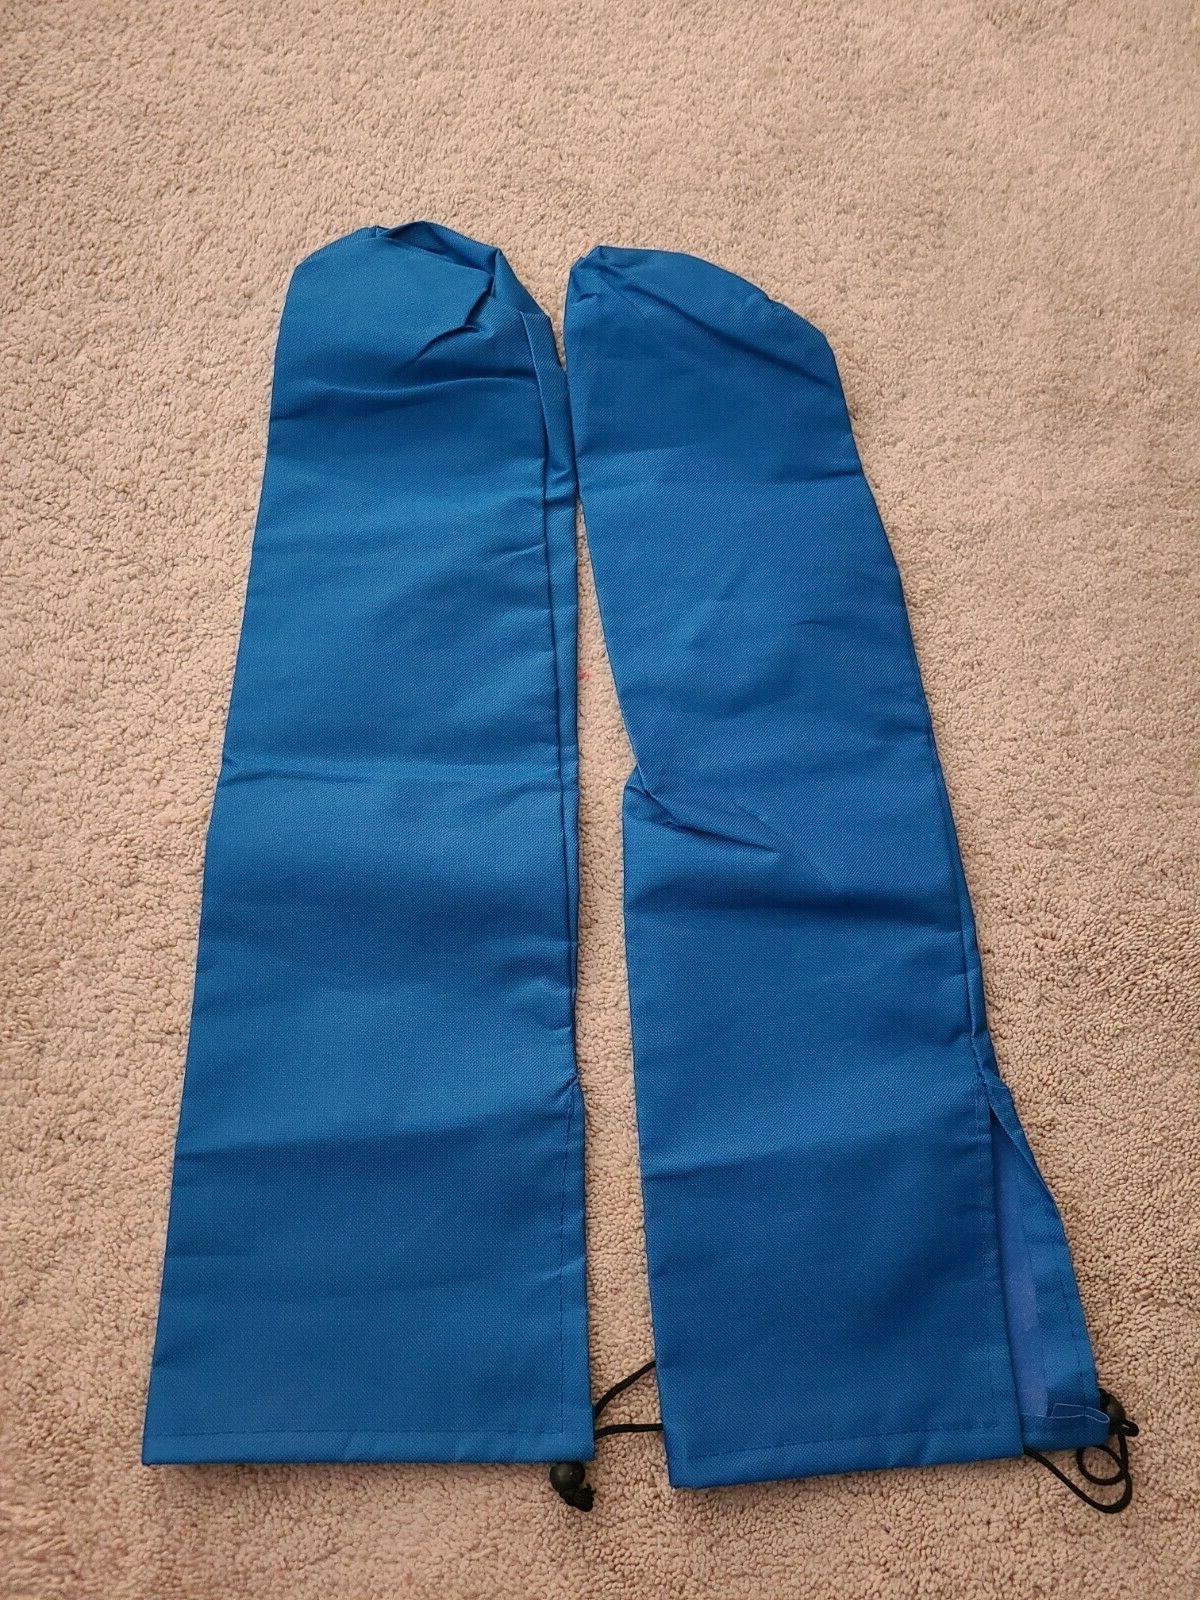 2 Blue Carrying Bags X size. For folding chairs